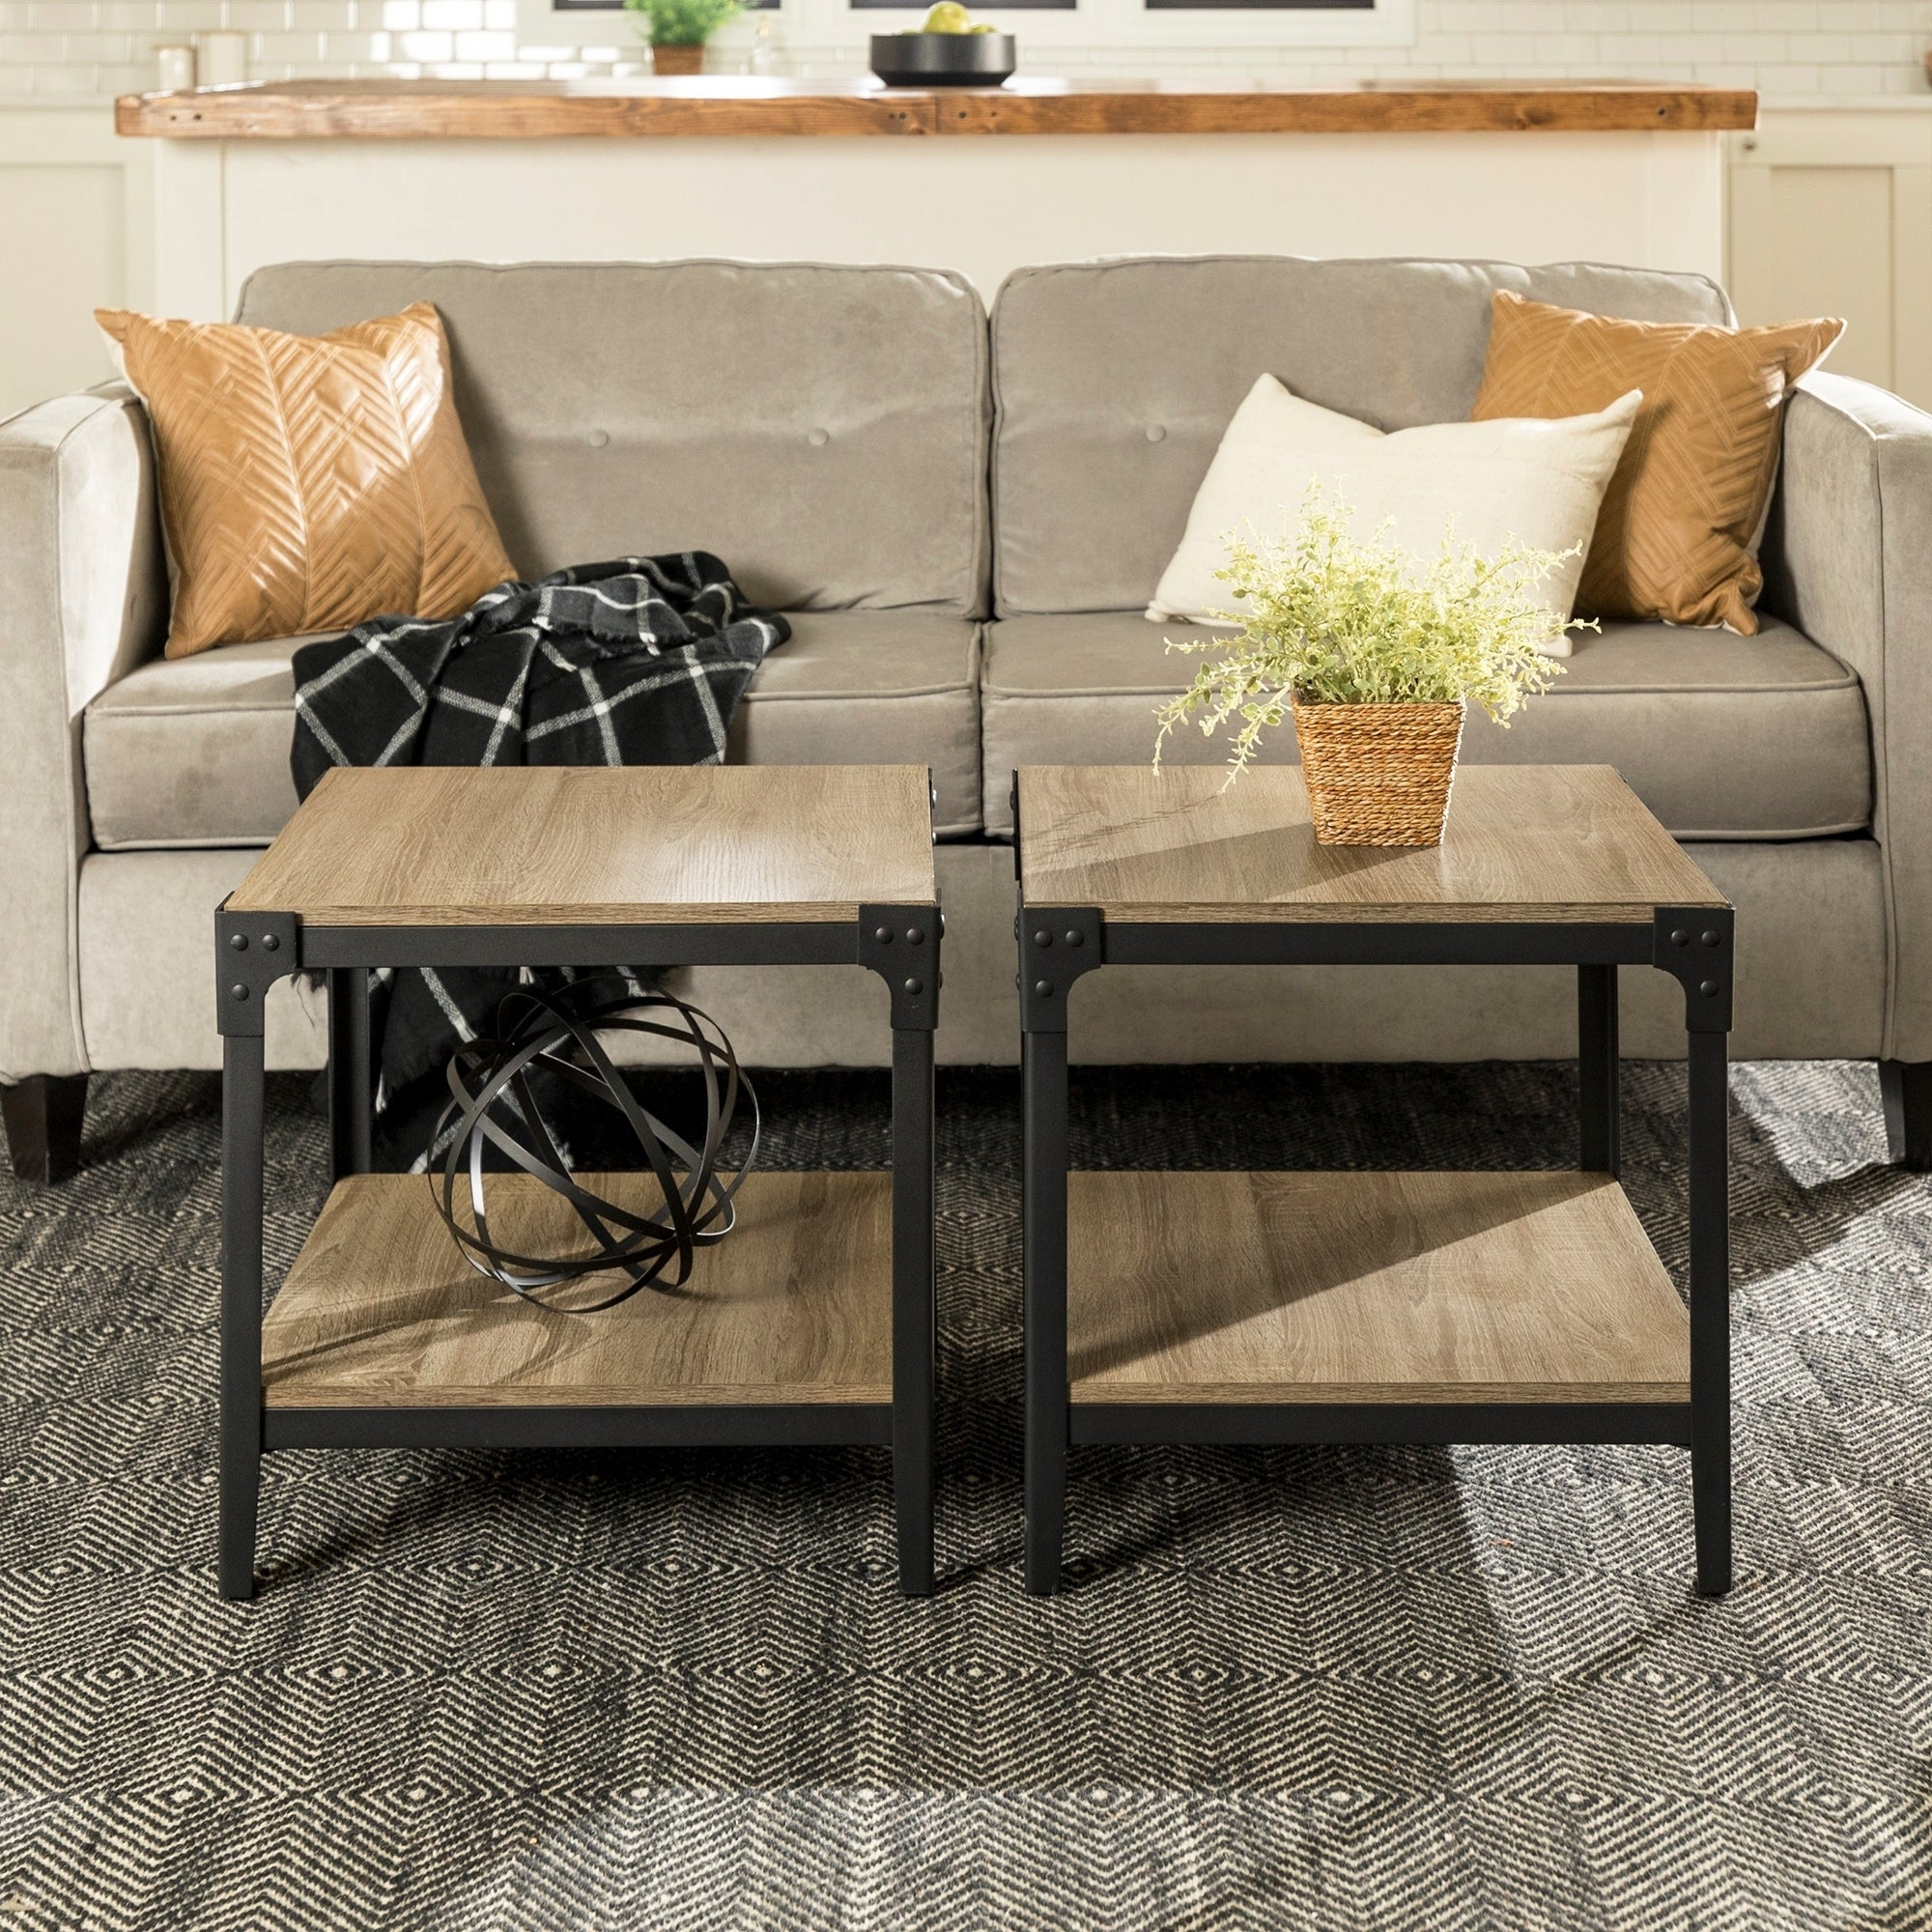 Well Known Carbon Loft Witten Angle Iron And Driftwood Coffee Tables Inside Carbon Loft Witten Angle Iron End Table (Set Of 2) – 20 X 20 X 20H (View 19 of 20)